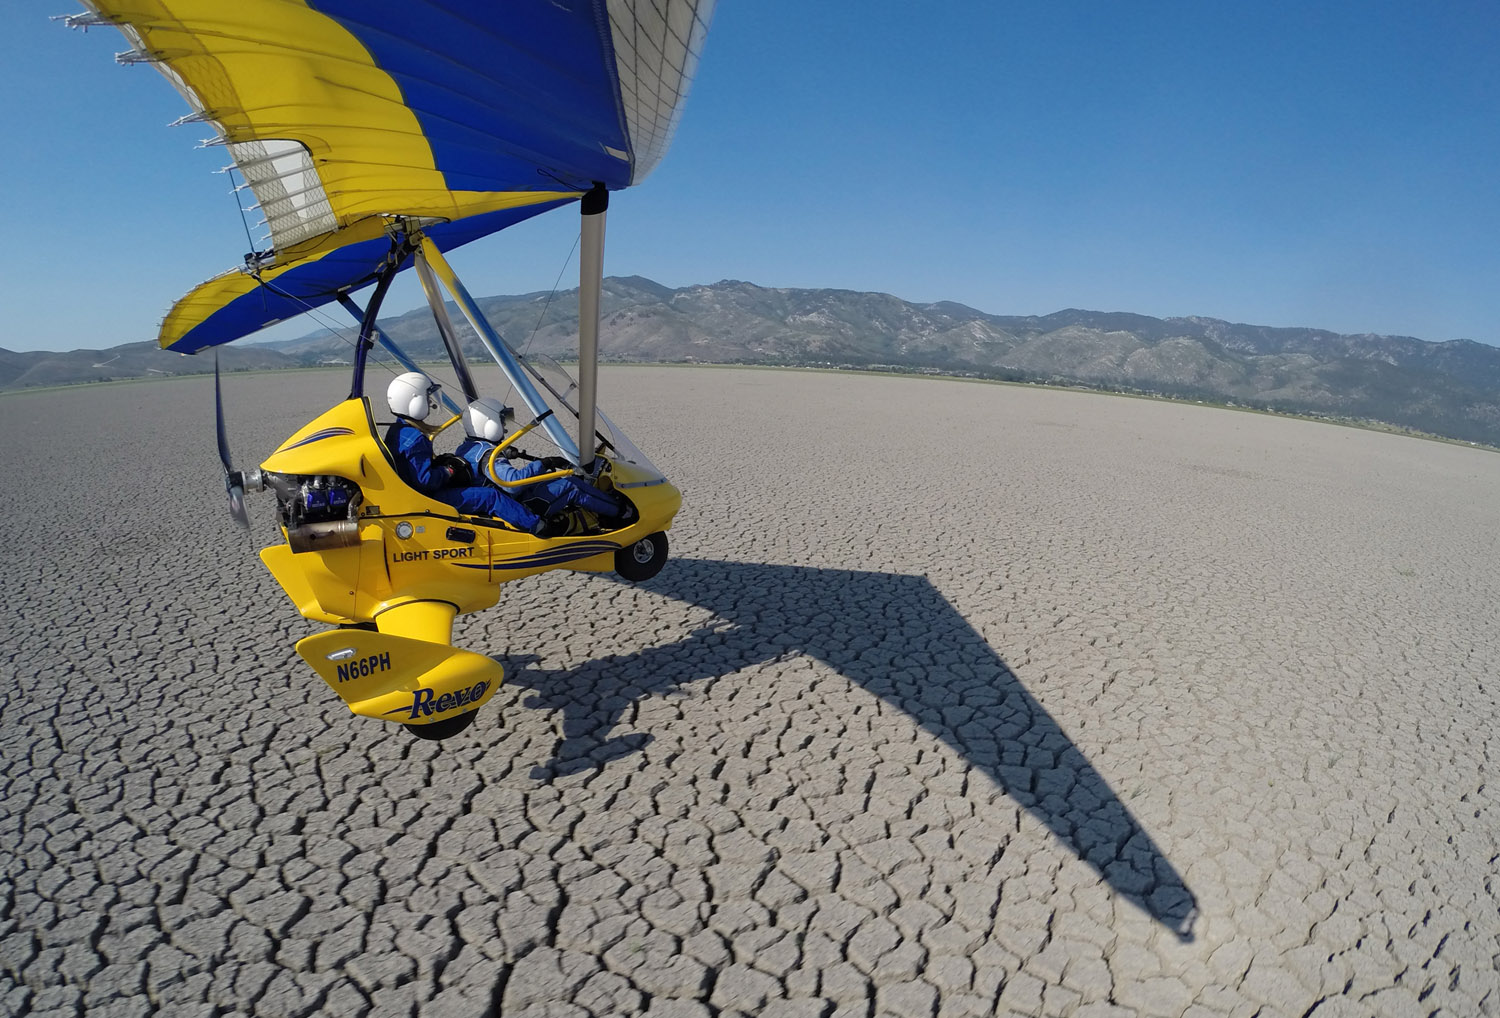 Skimming low over dry lake bed in powered hang glider.